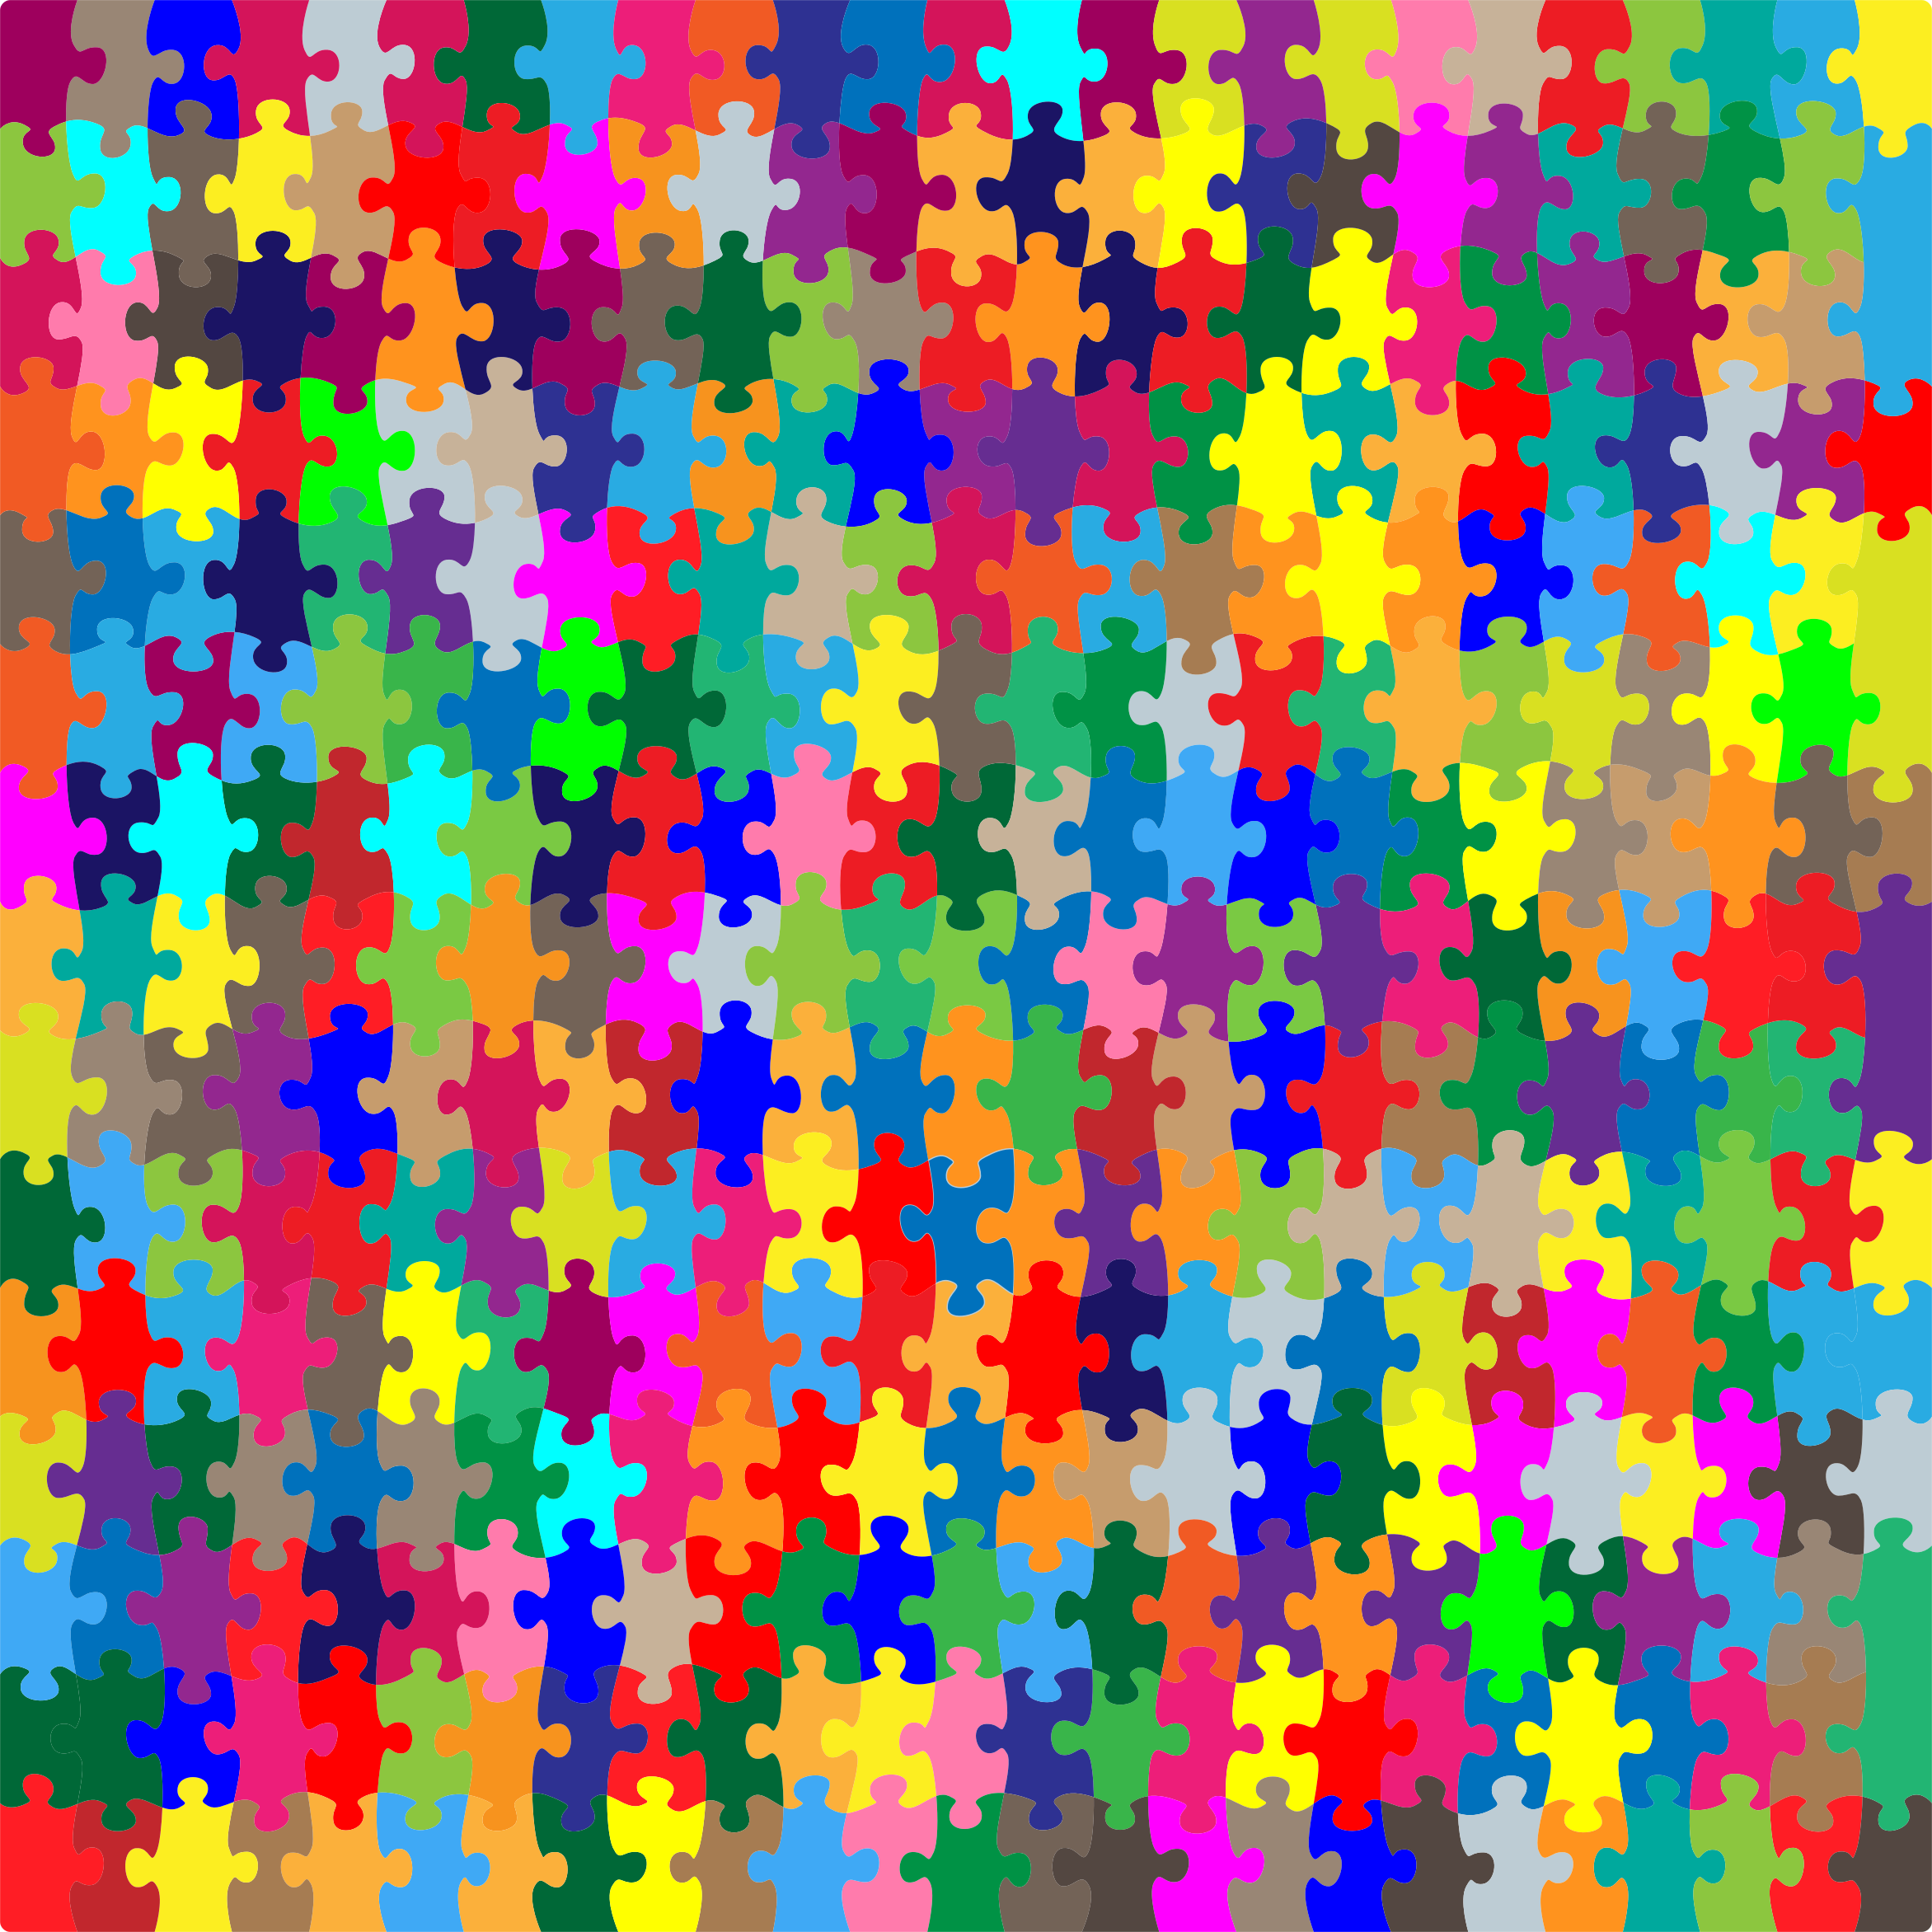 Multicolored Jigsaw Puzzle Pieces No Strokes by GDJ